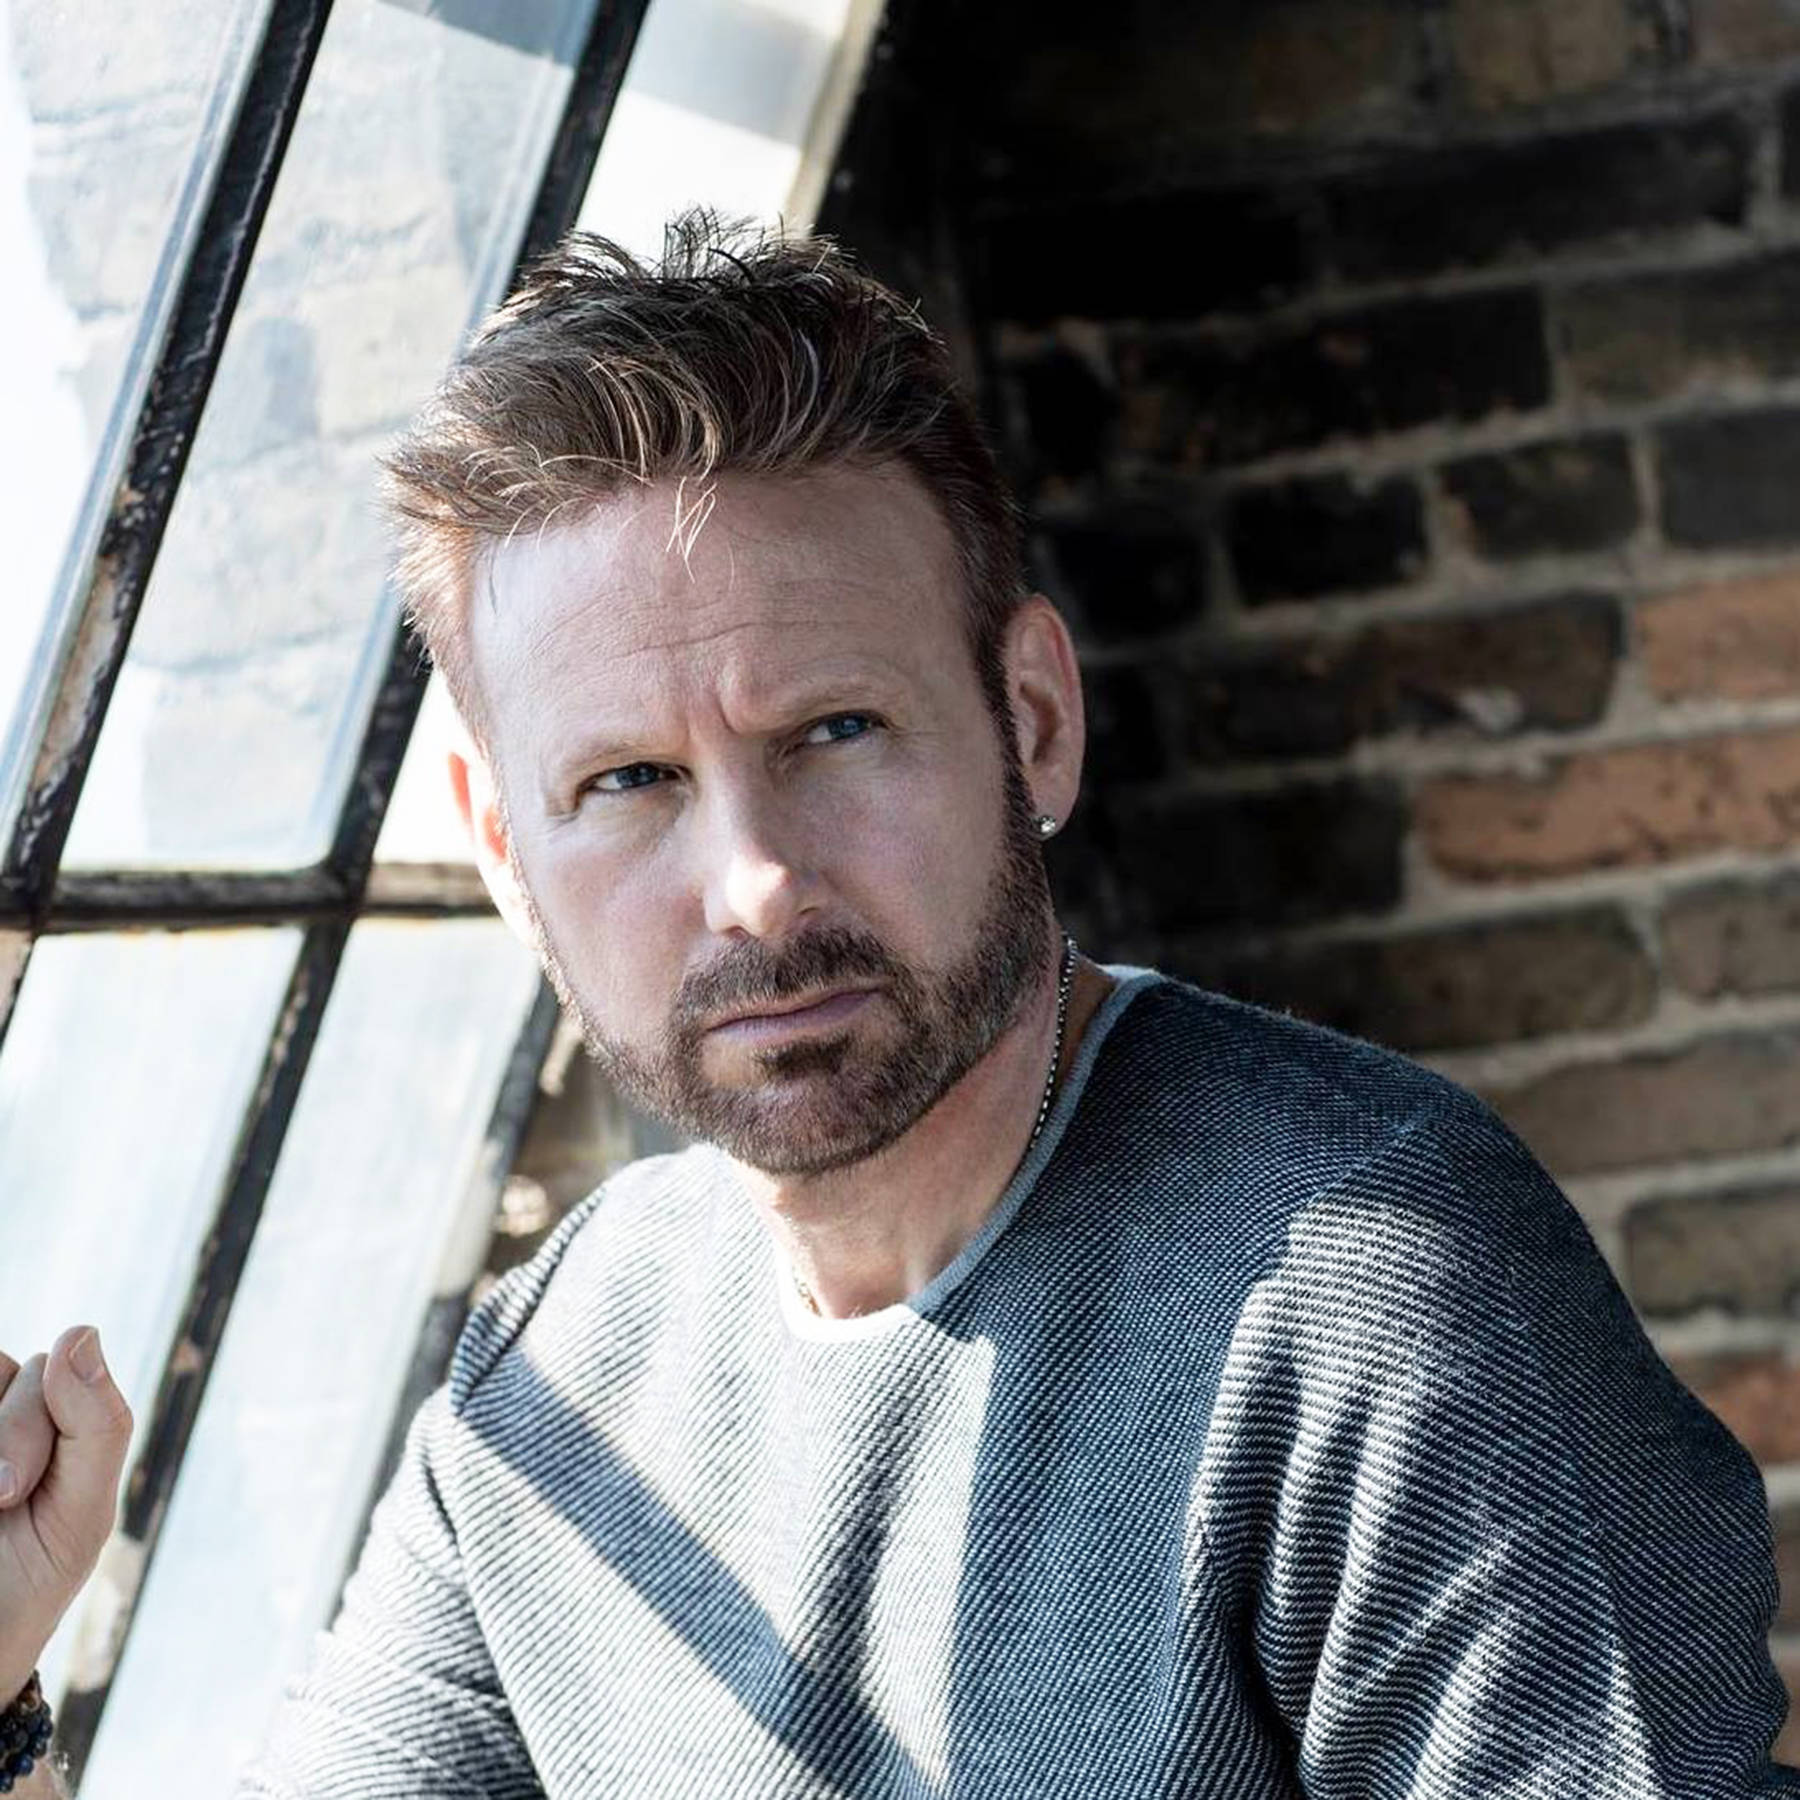 Canadian pop songsmith Corey Hart brings his new tunes, and some of the old hits, to Save-On-Foods Memorial Centre for a June 24 double bill with fellow 80s pop stars Glass Tiger. Facebook